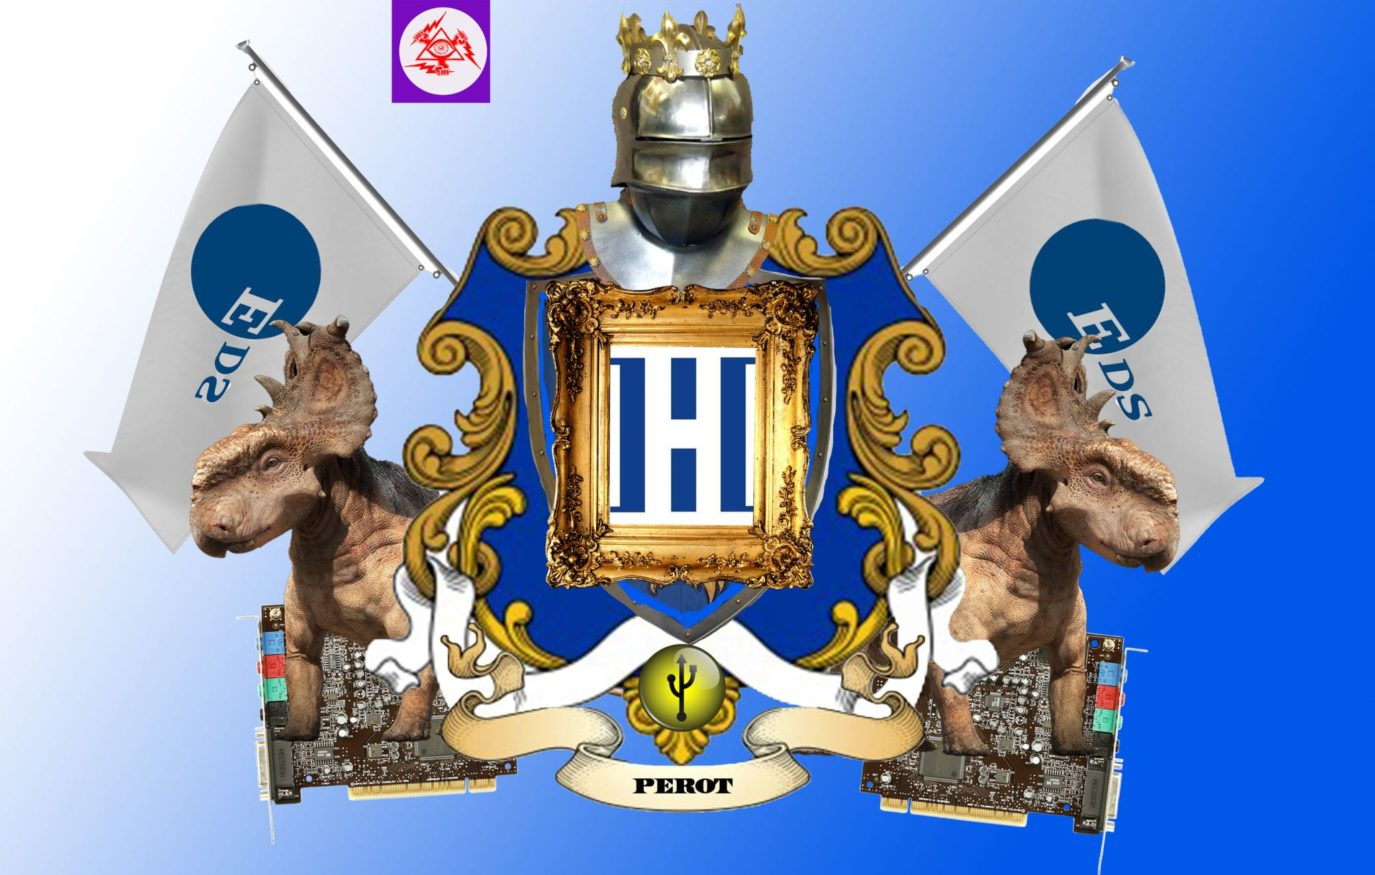 Ross Perot Coat of Arms and Awards